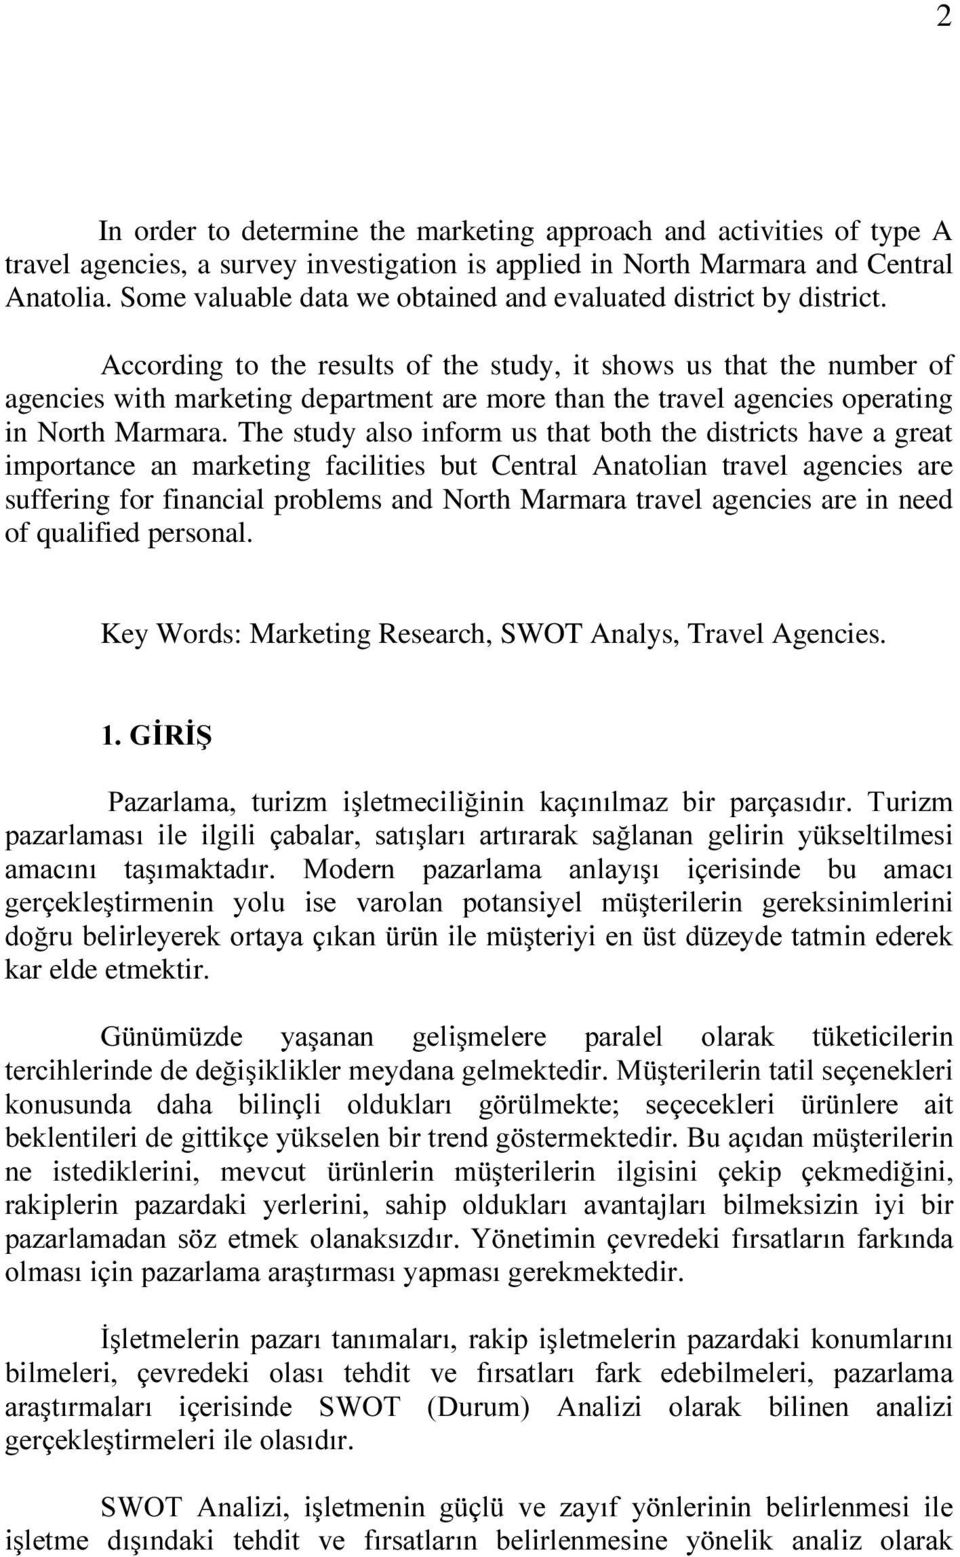 According to the results of the study, it shows us that the number of agencies with marketing department are more than the travel agencies operating in North Marmara.